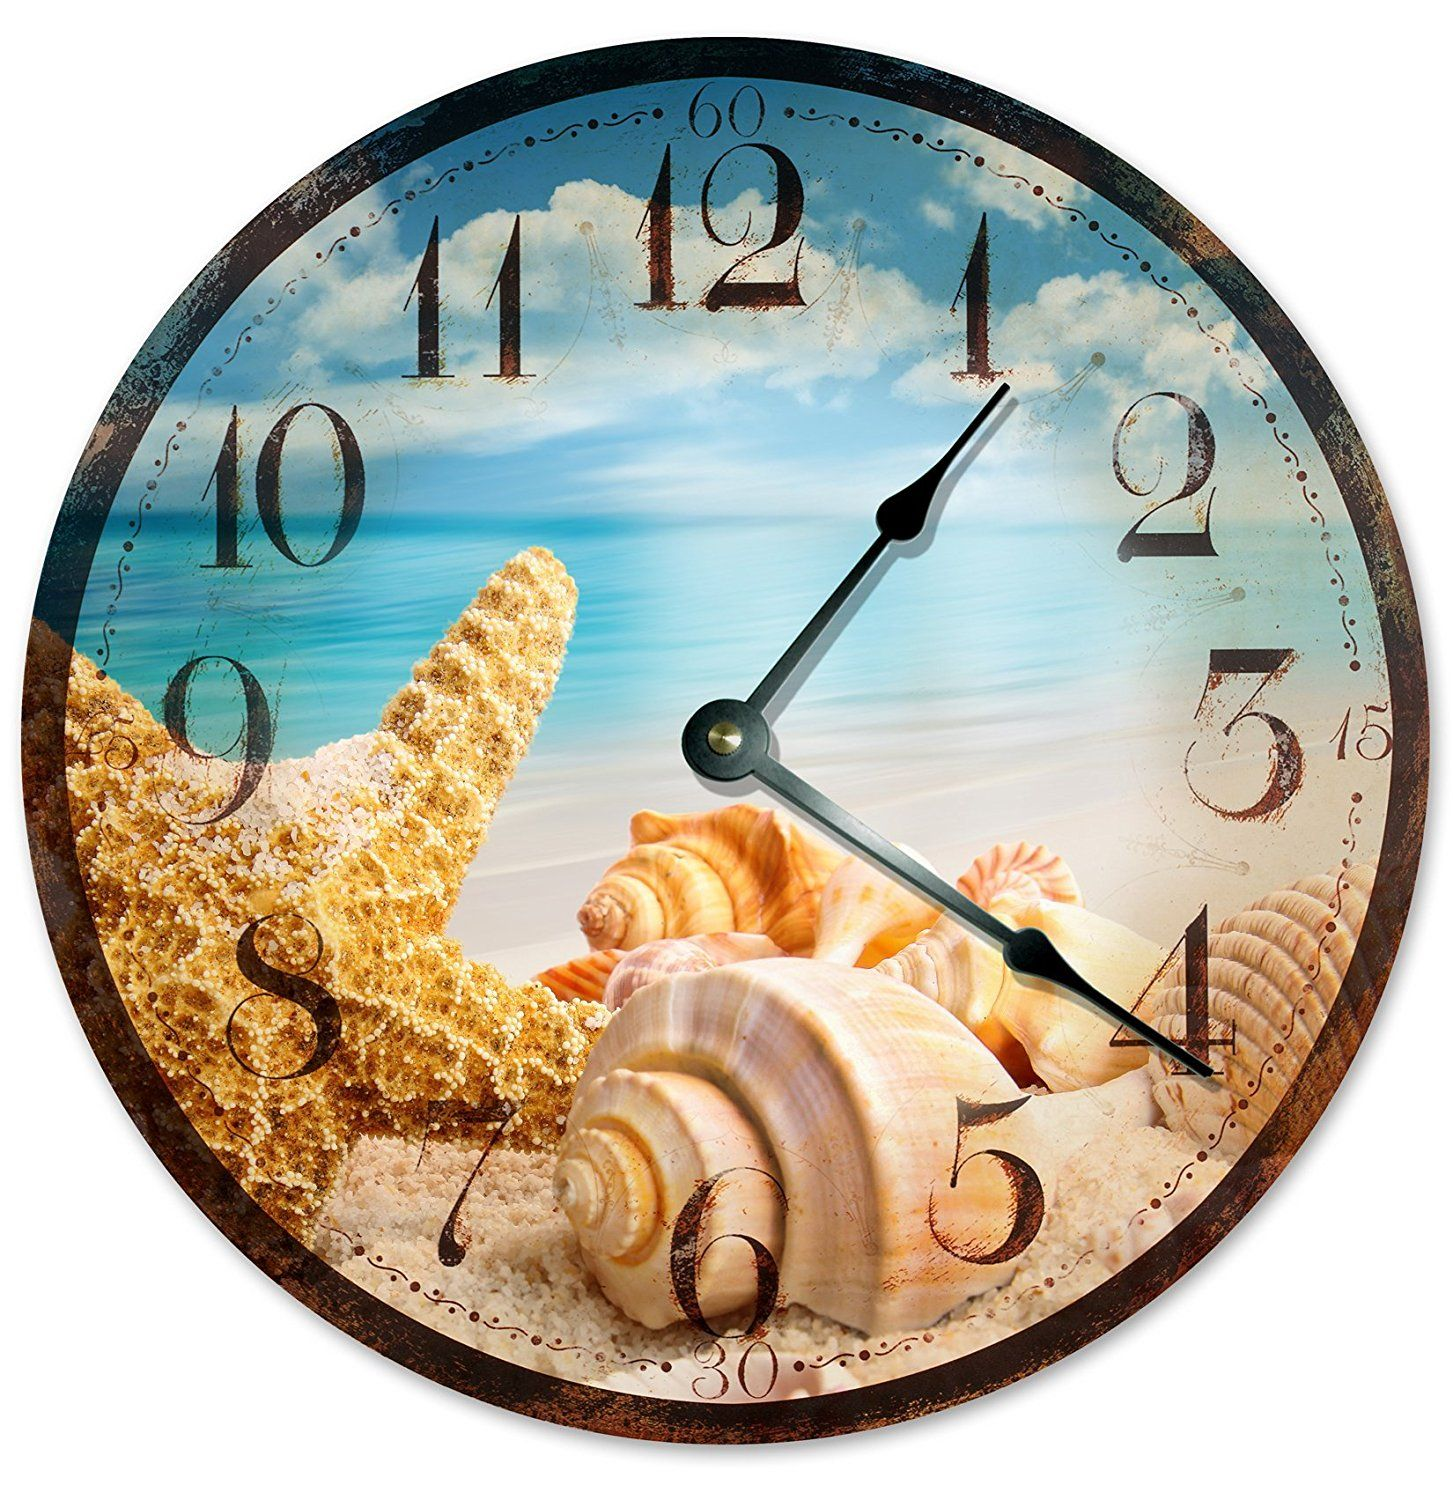 Rustic Sea Shells Beach Clock Large 10 5 Wall Decorative Round Ocean Home Decor Novelty Beachy Details Can Be Fou